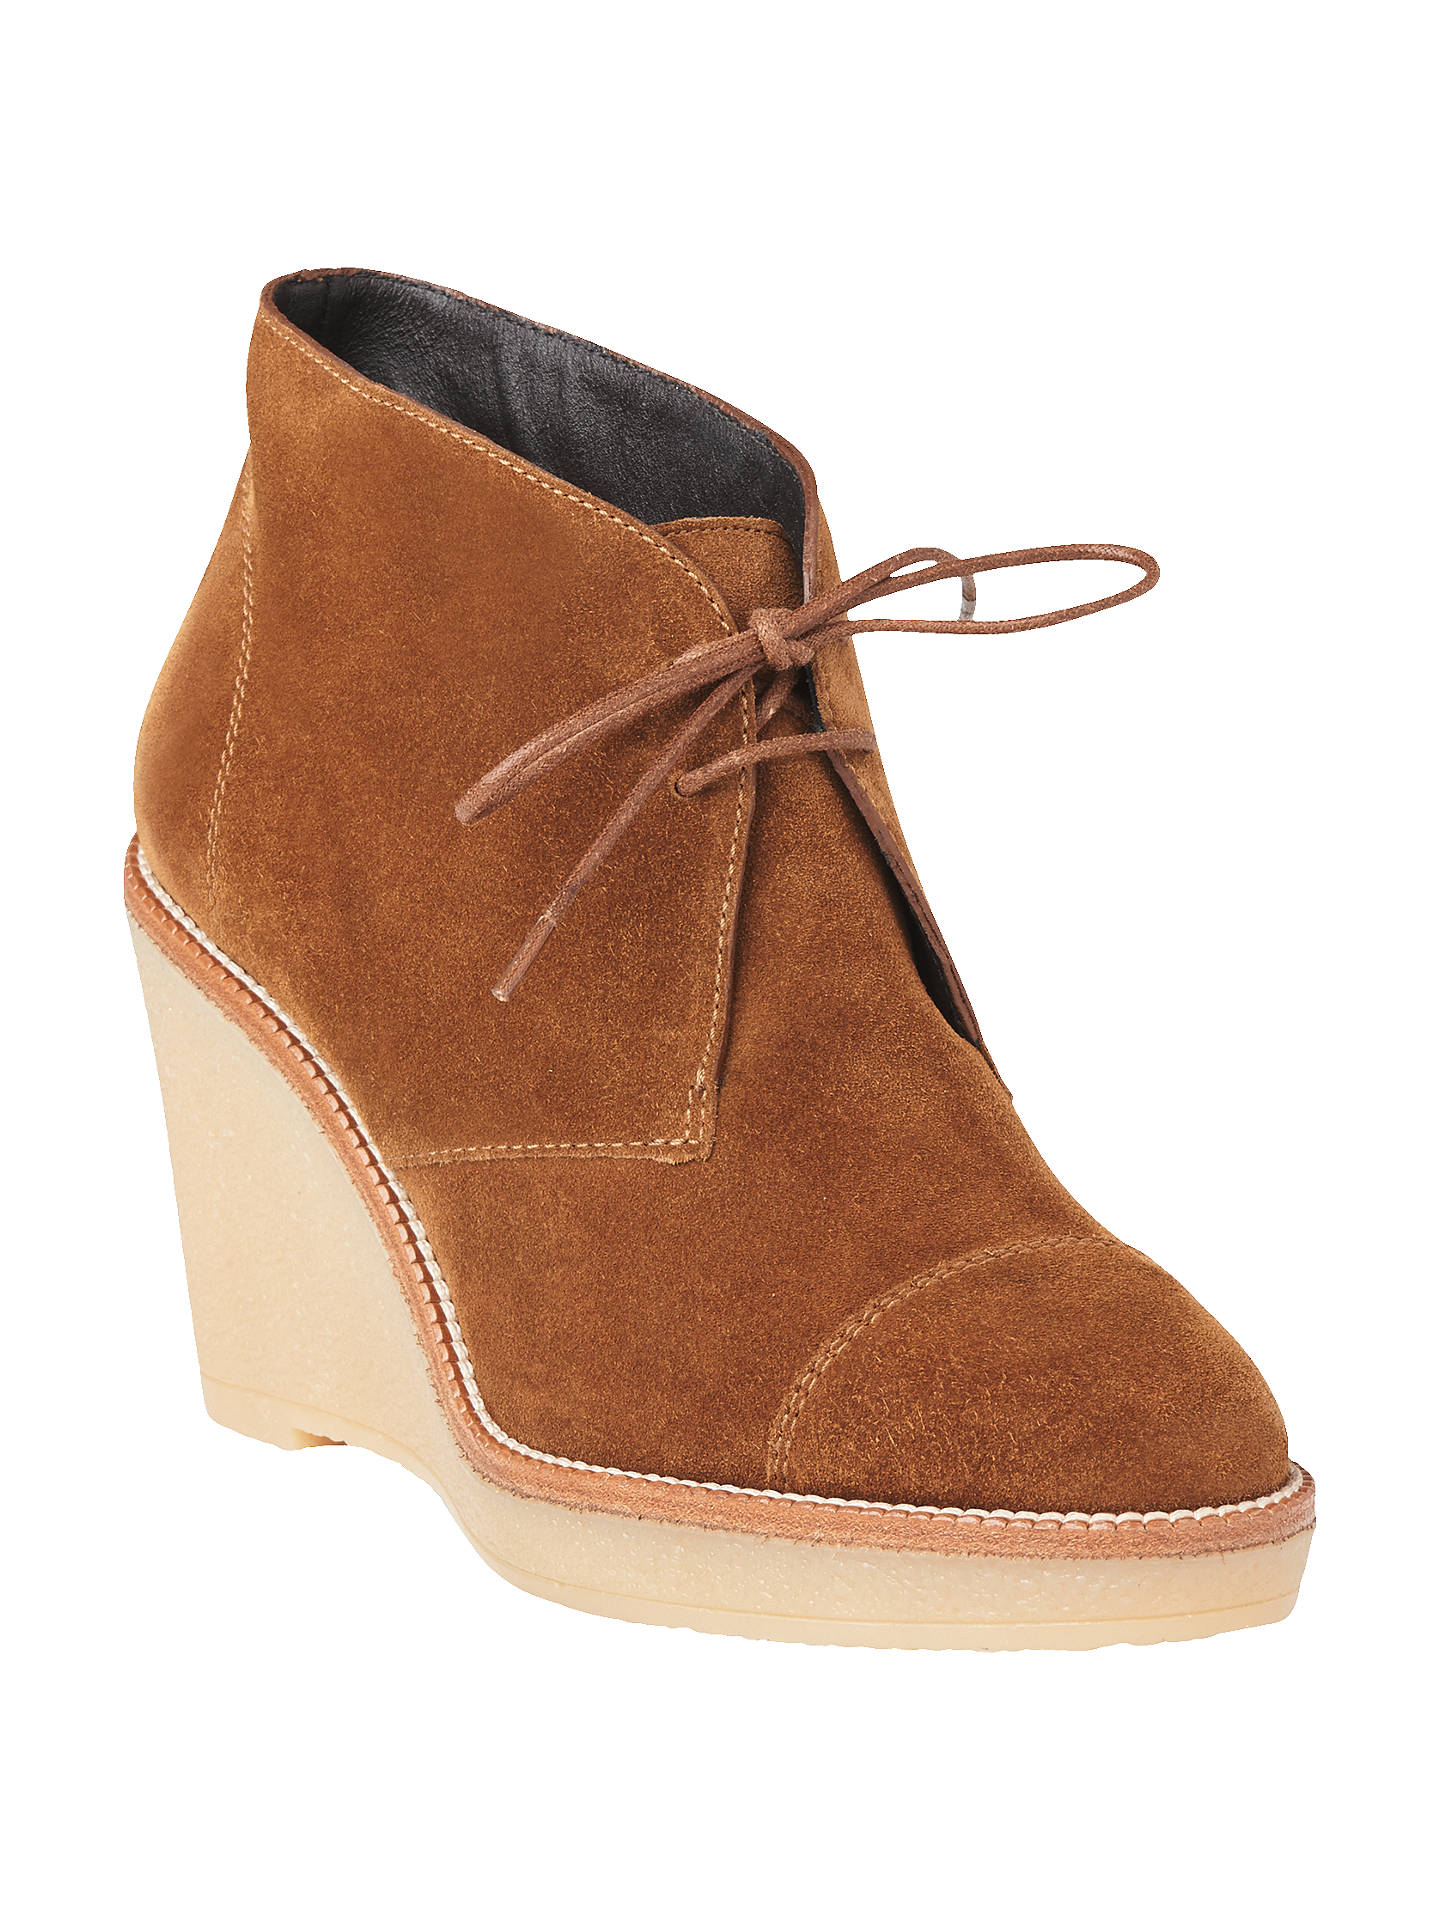 5e5a201ab26 Buy L.K. Bennett Madi Wedge Heeled Ankle Boots